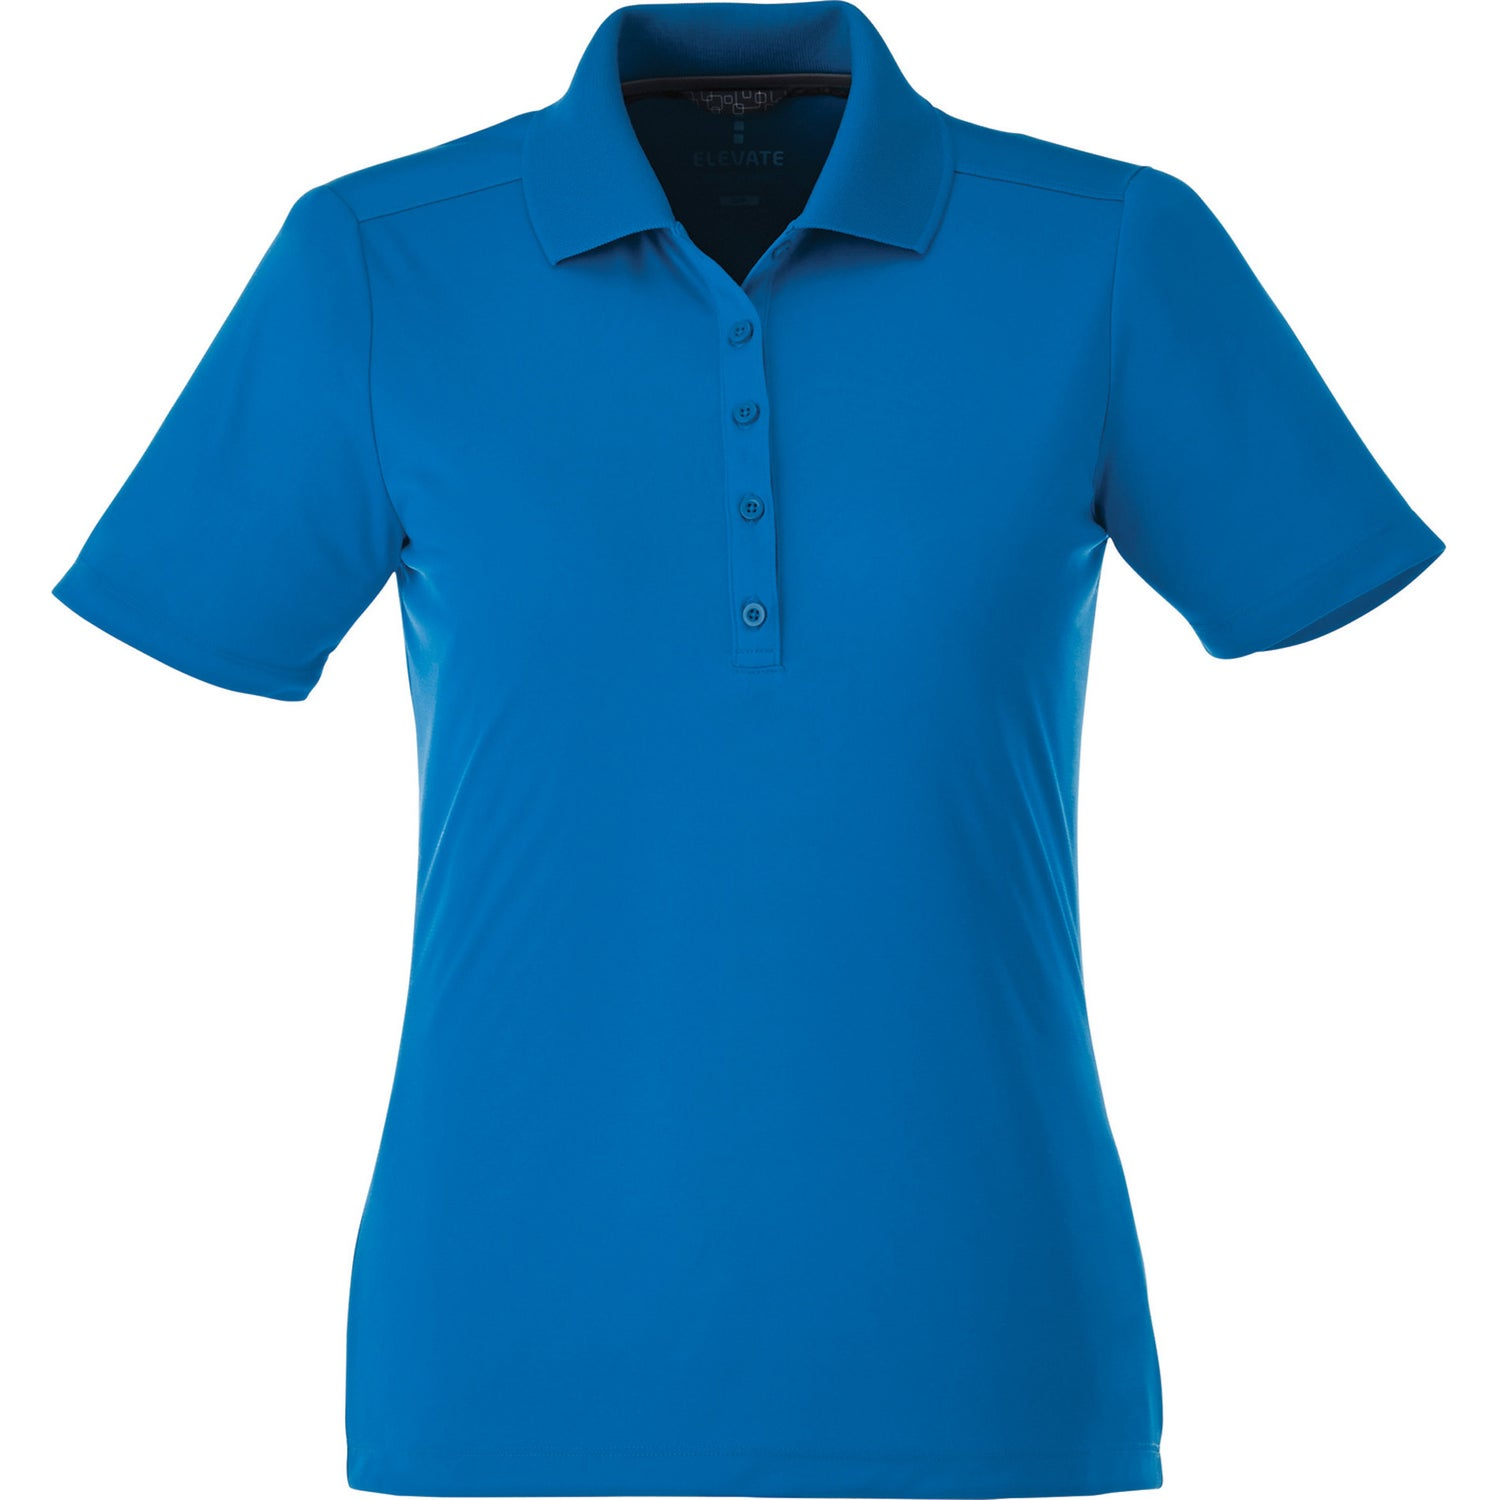 Dade short sleeve polo shirt by trimark women 39 s for Quality polo shirts with company logo